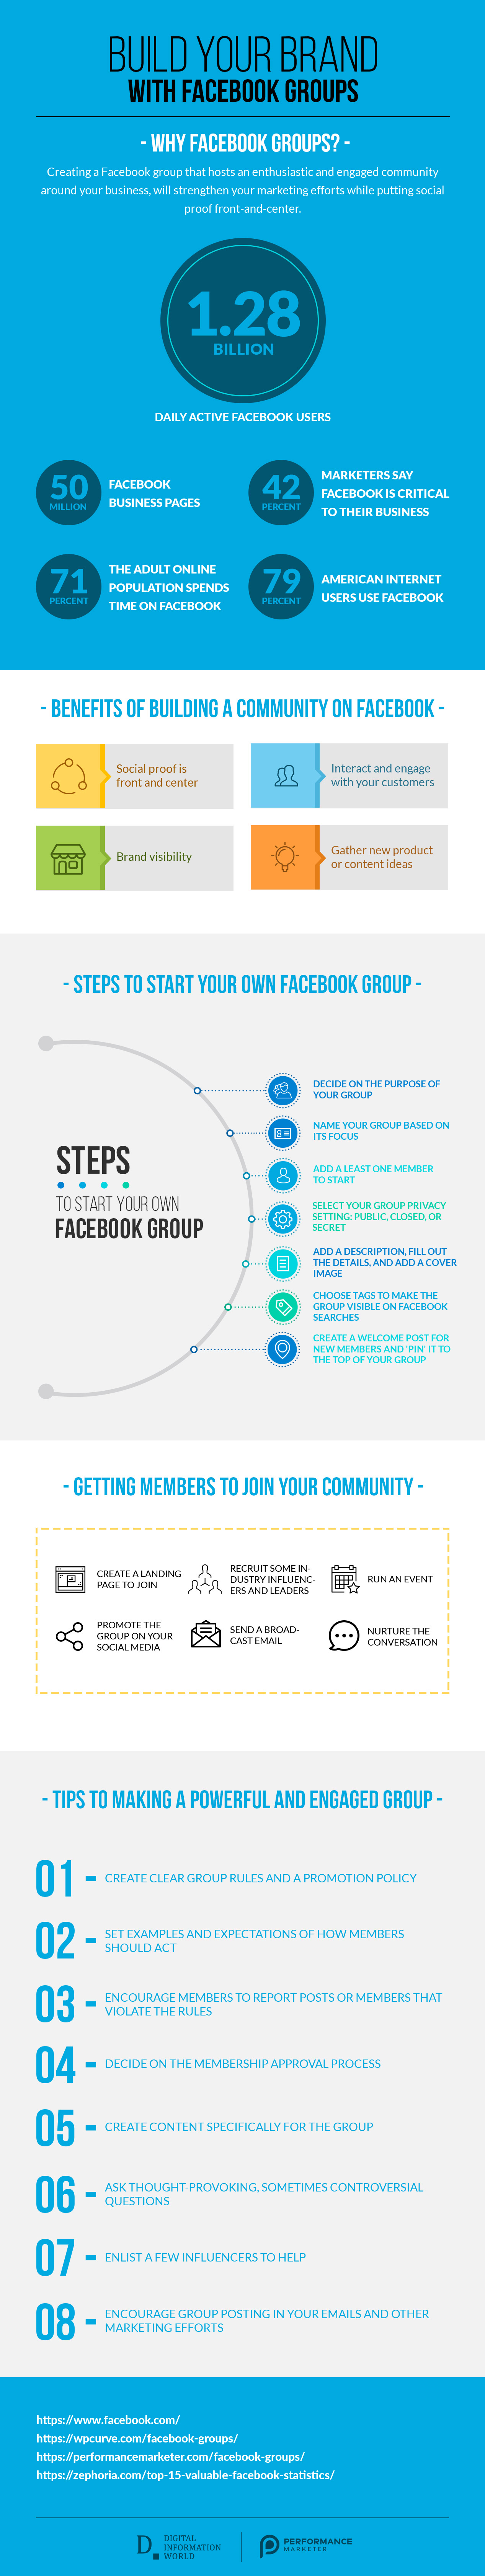 Facebook Groups: Build a Community Around Your Brand